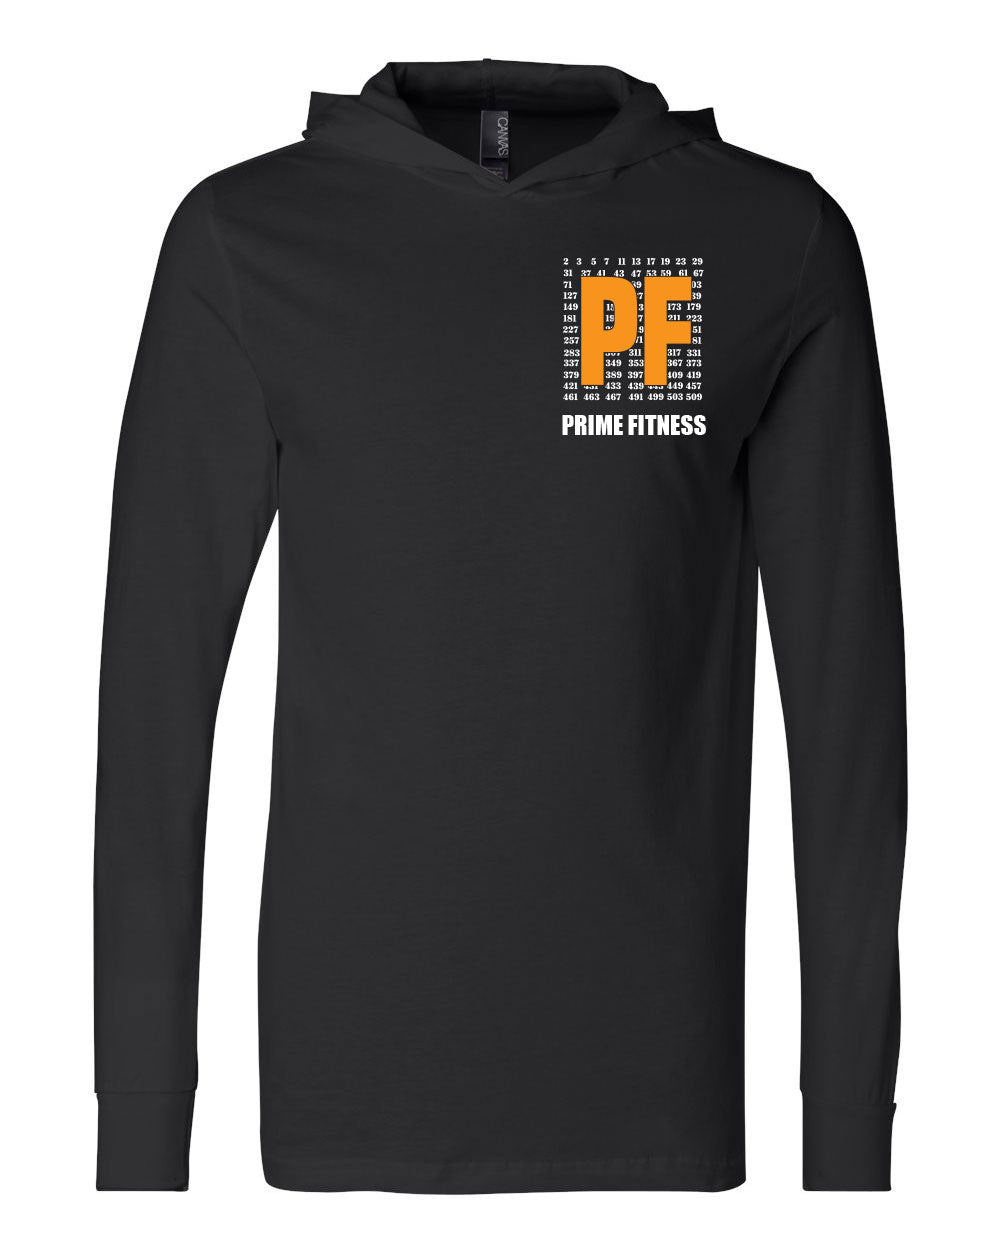 Prime Fitness Long-Sleeved Jersey Hooded Tee - Paws & Prints Studio